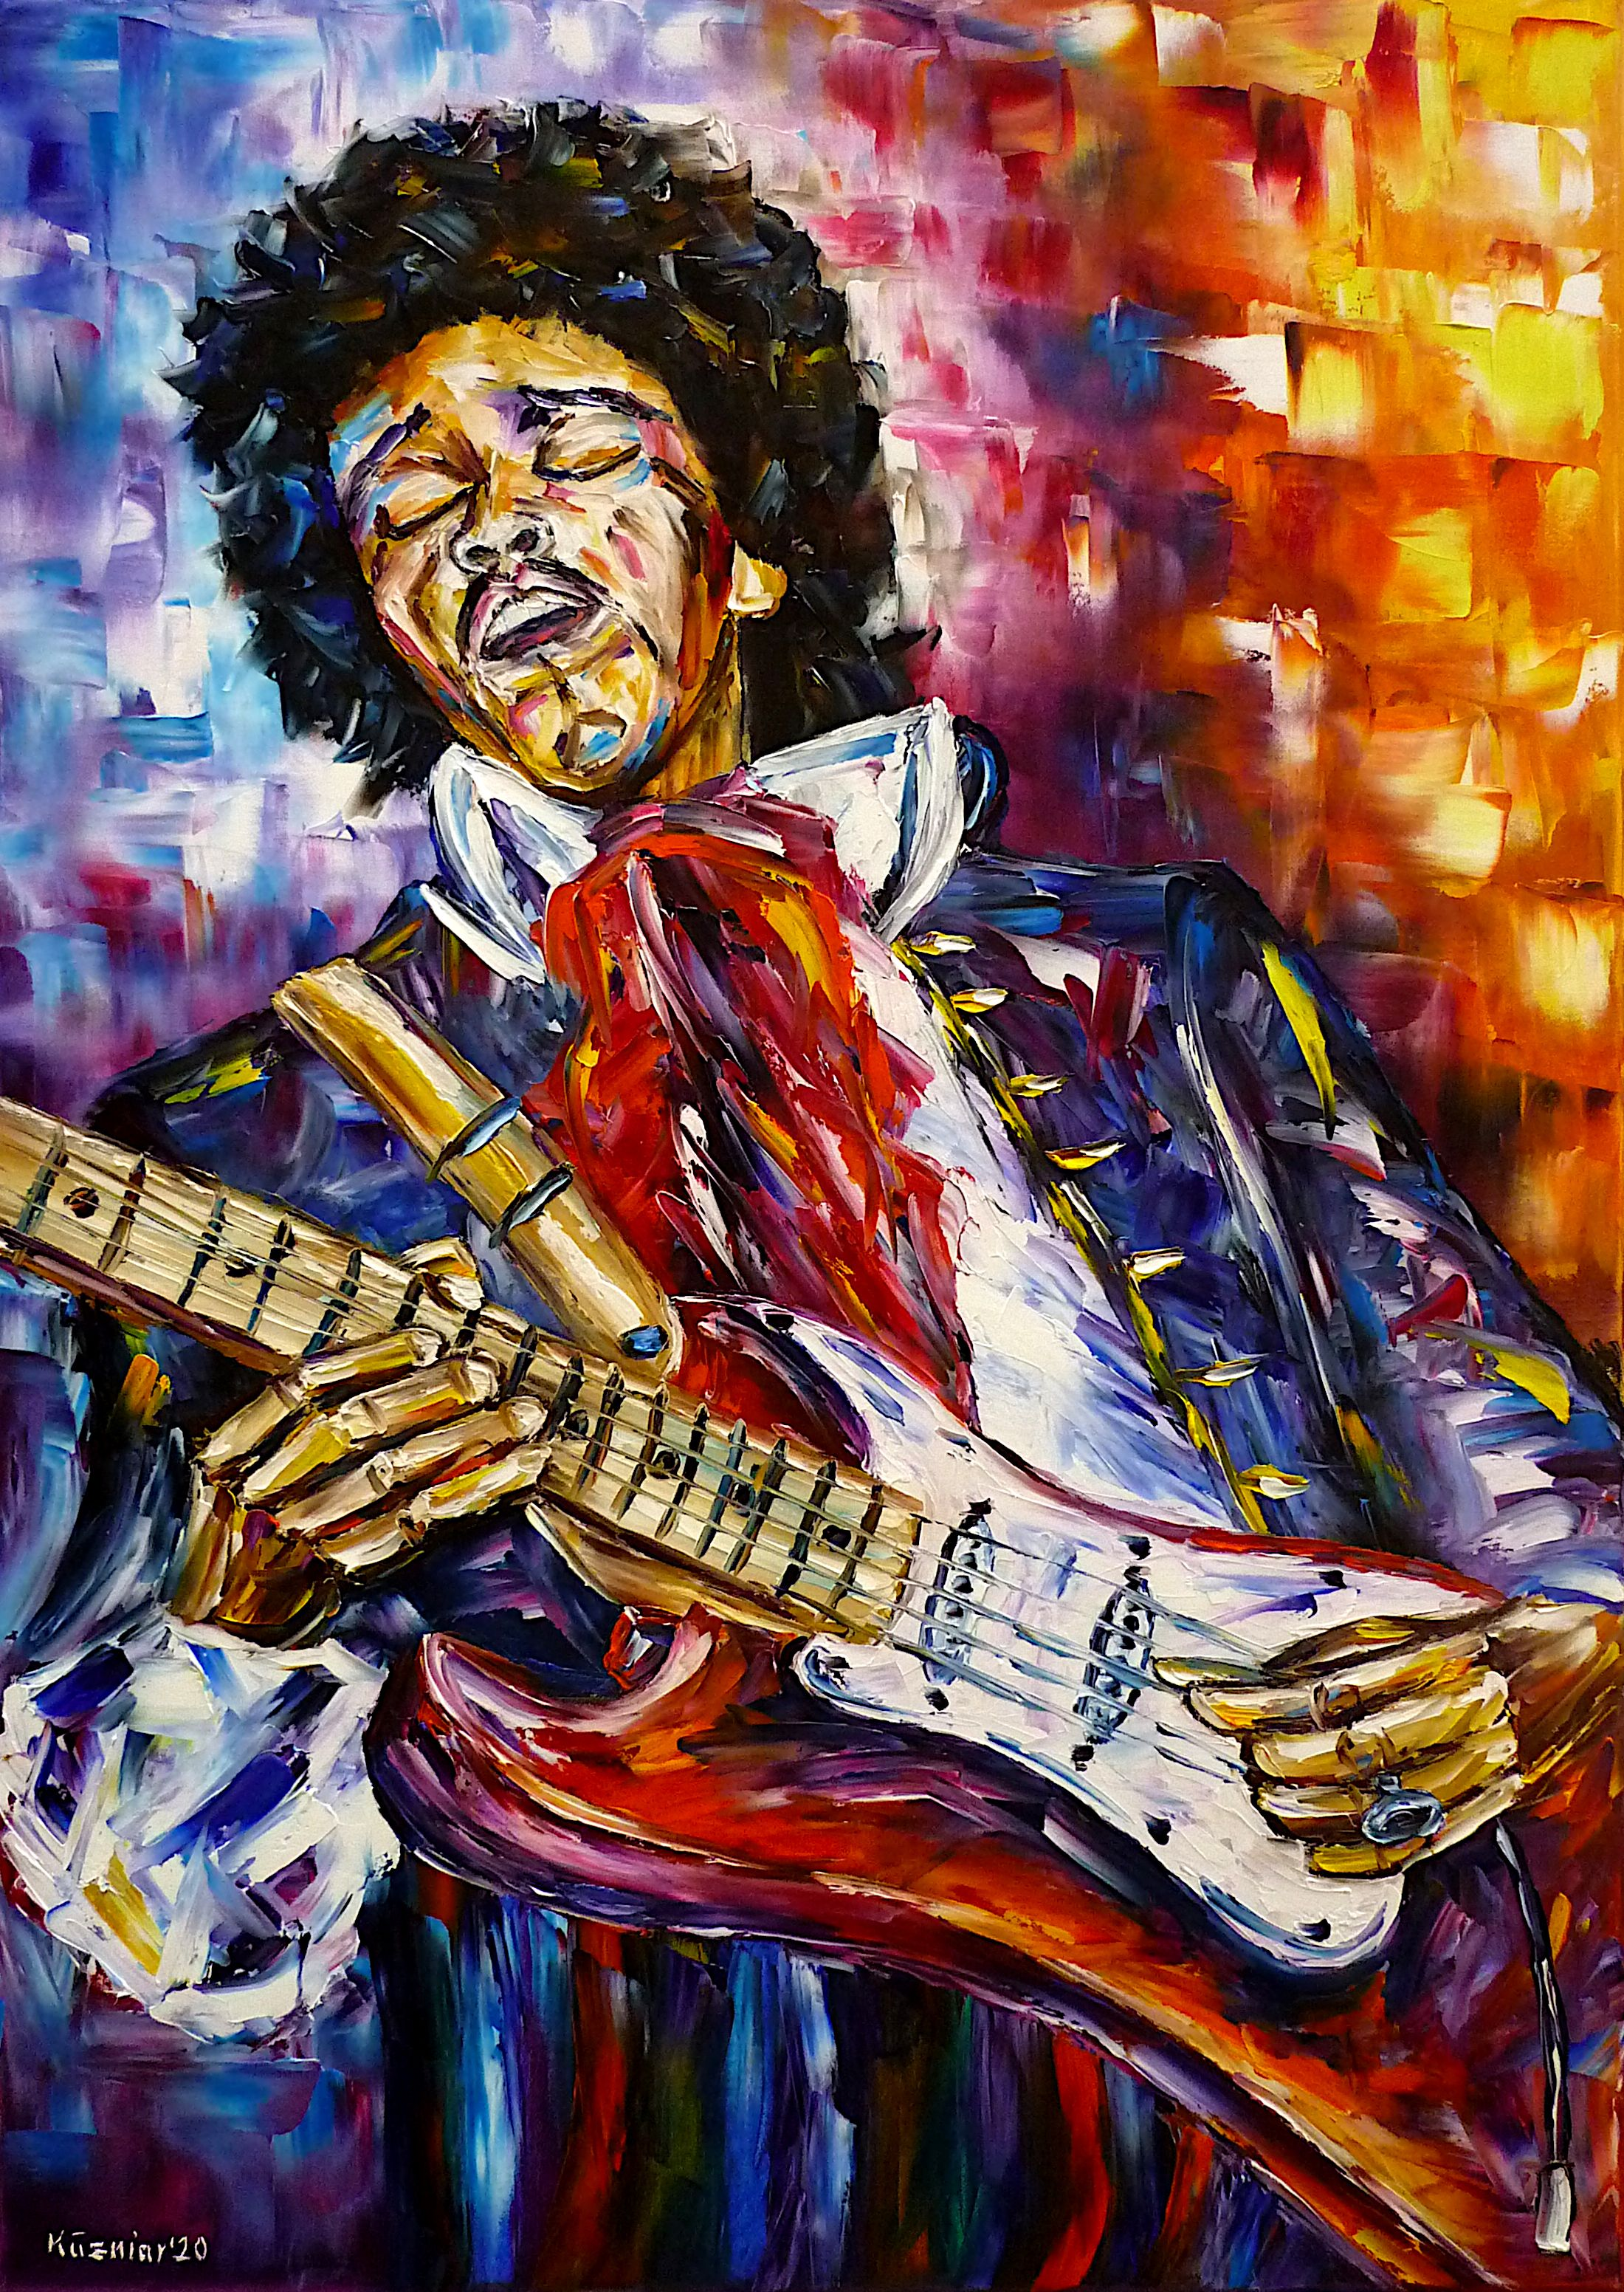 jimihendrixpainting,jimihendrixpicture,jimihendrixportrait,musicianpainting,musicianportrait,makingmusic,playingmusic,musical,guitarist,guitarplayer,playingguitar,manwithguitar,coloredpainting,coloredportrait,coloredman,rockmusic,rockmusician,peoplepainting,colorfulportrait,jimihendrixabstract,ilovejimihendrix,jimihendrixlove,jimihendrixlovers,flowerpower,flowerchildren,60s,70s,hippymusic,hippies,cheerfulpicture,joy,friendlypicture,friendlypainting,peace,peacefulpicture,peacefulpainting,paletteknifeoilpainting,modernart,impressionism,artdeco,abstractpainting,livelycolours,colorfulpainting,brightcolors,lightreflections,impastopainting,livingroomart,livingroompicture,livingroompainting